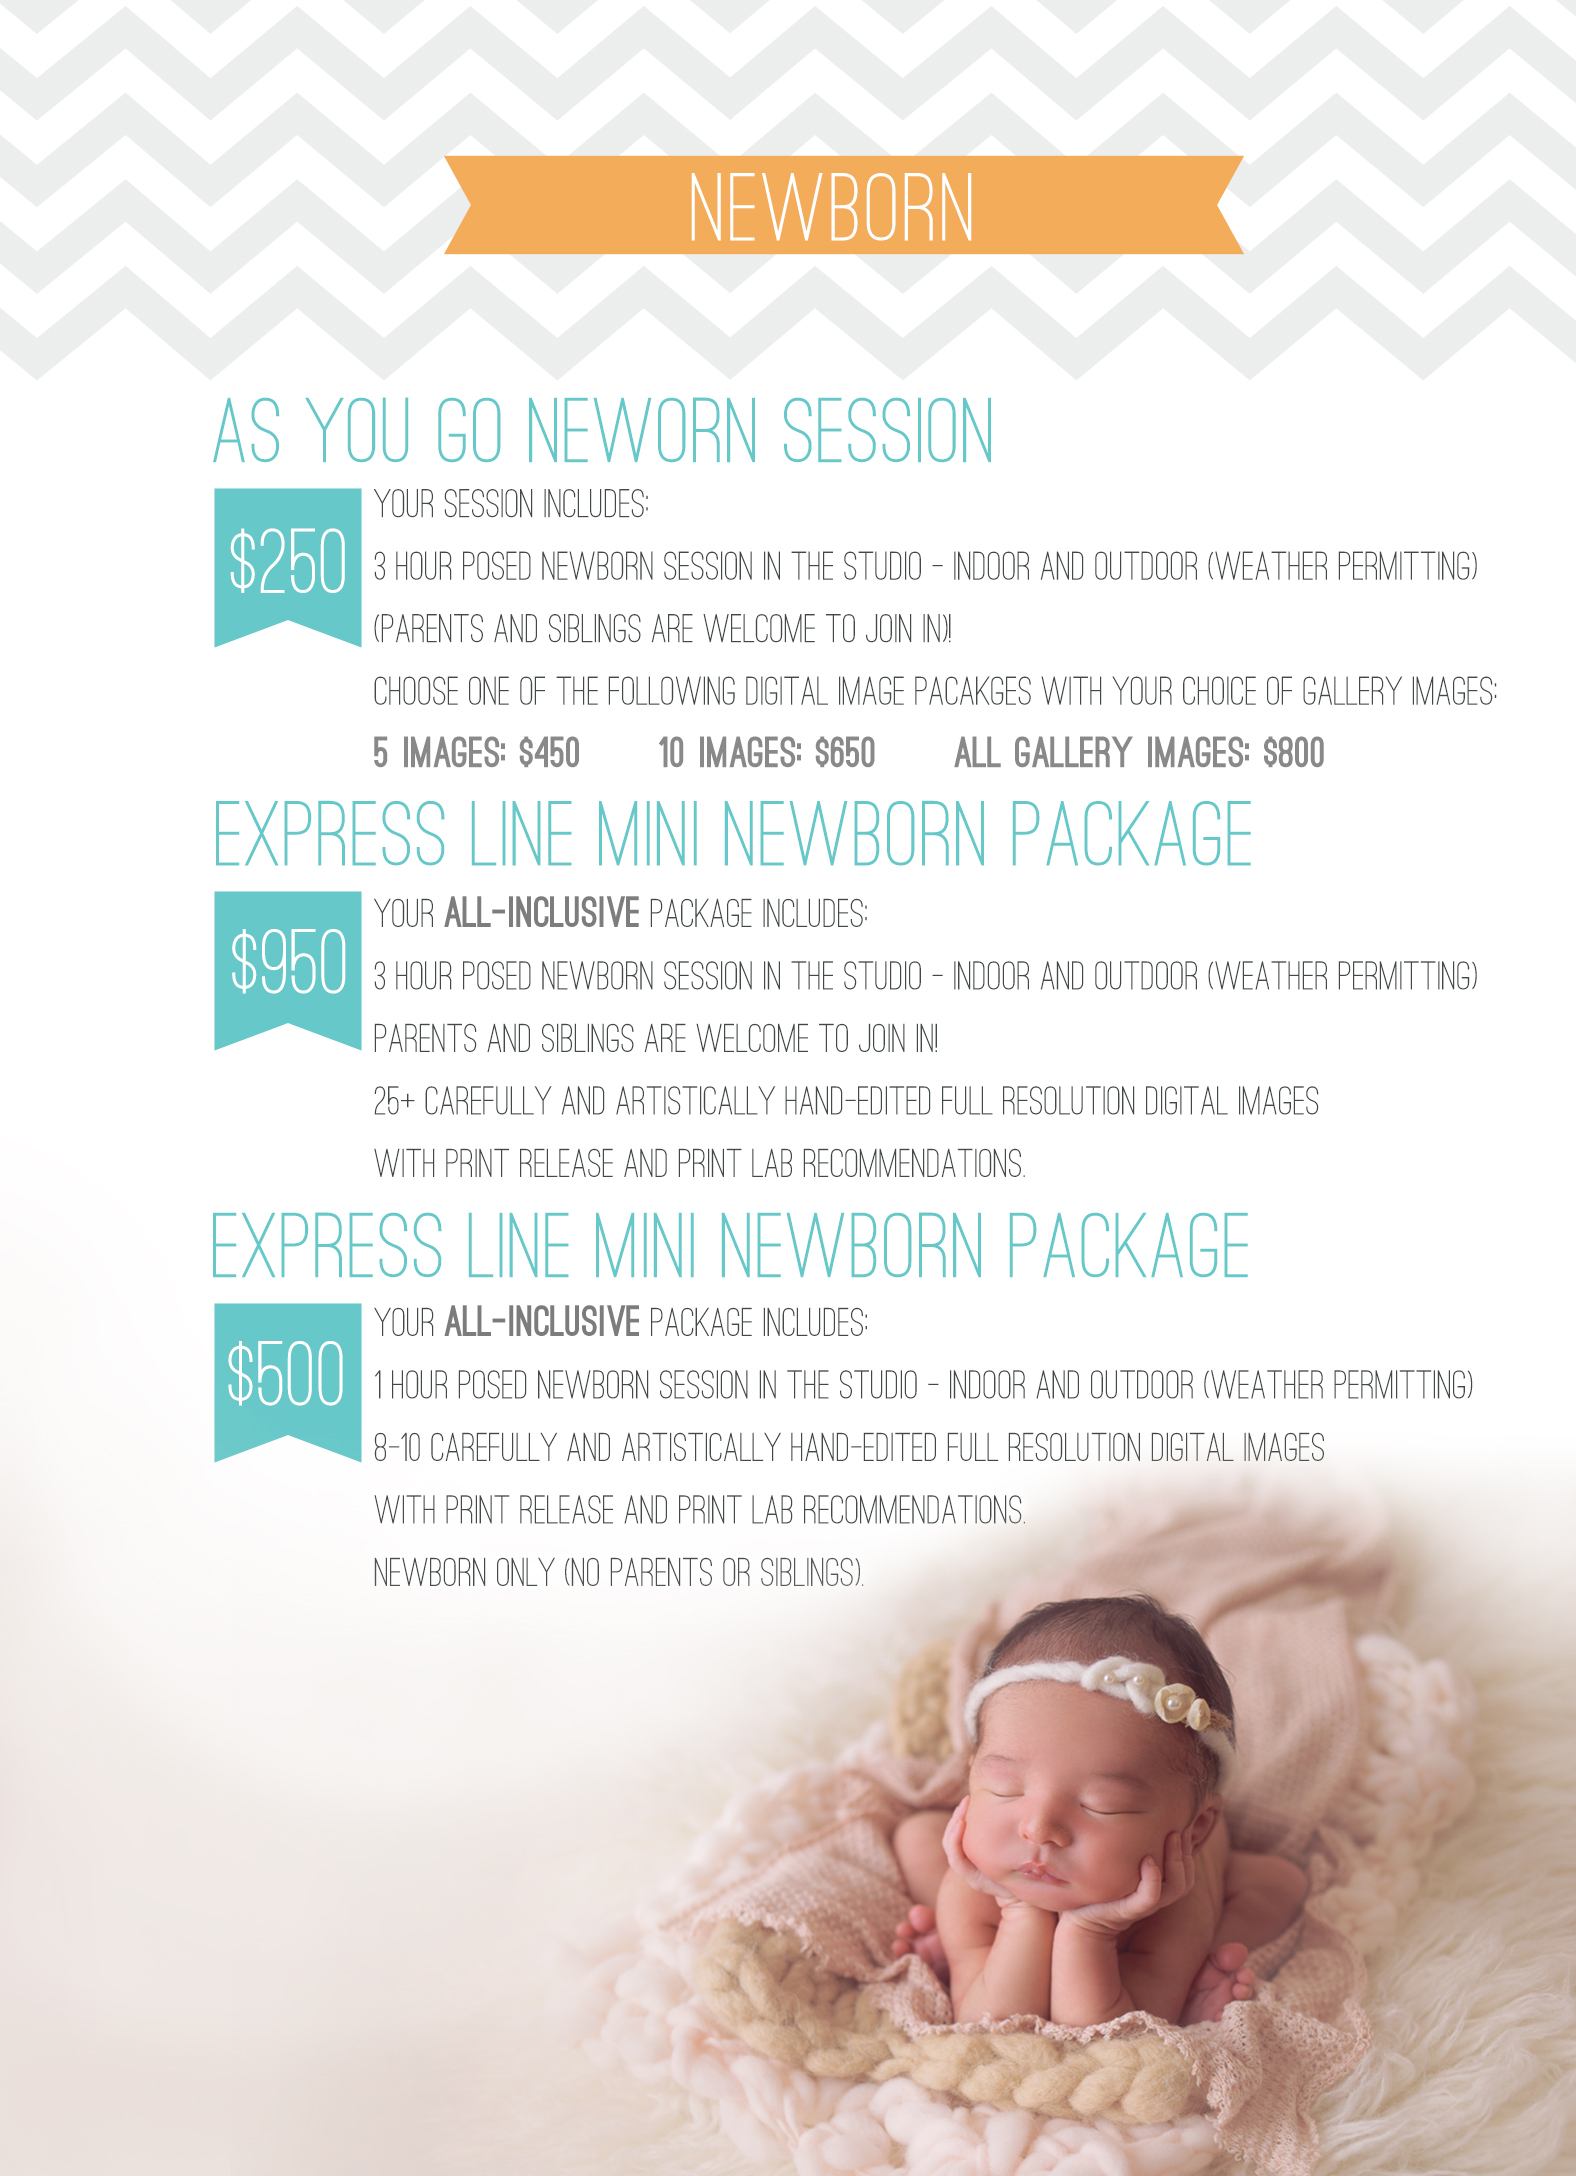 affordable newborn photography in San Diego, CA